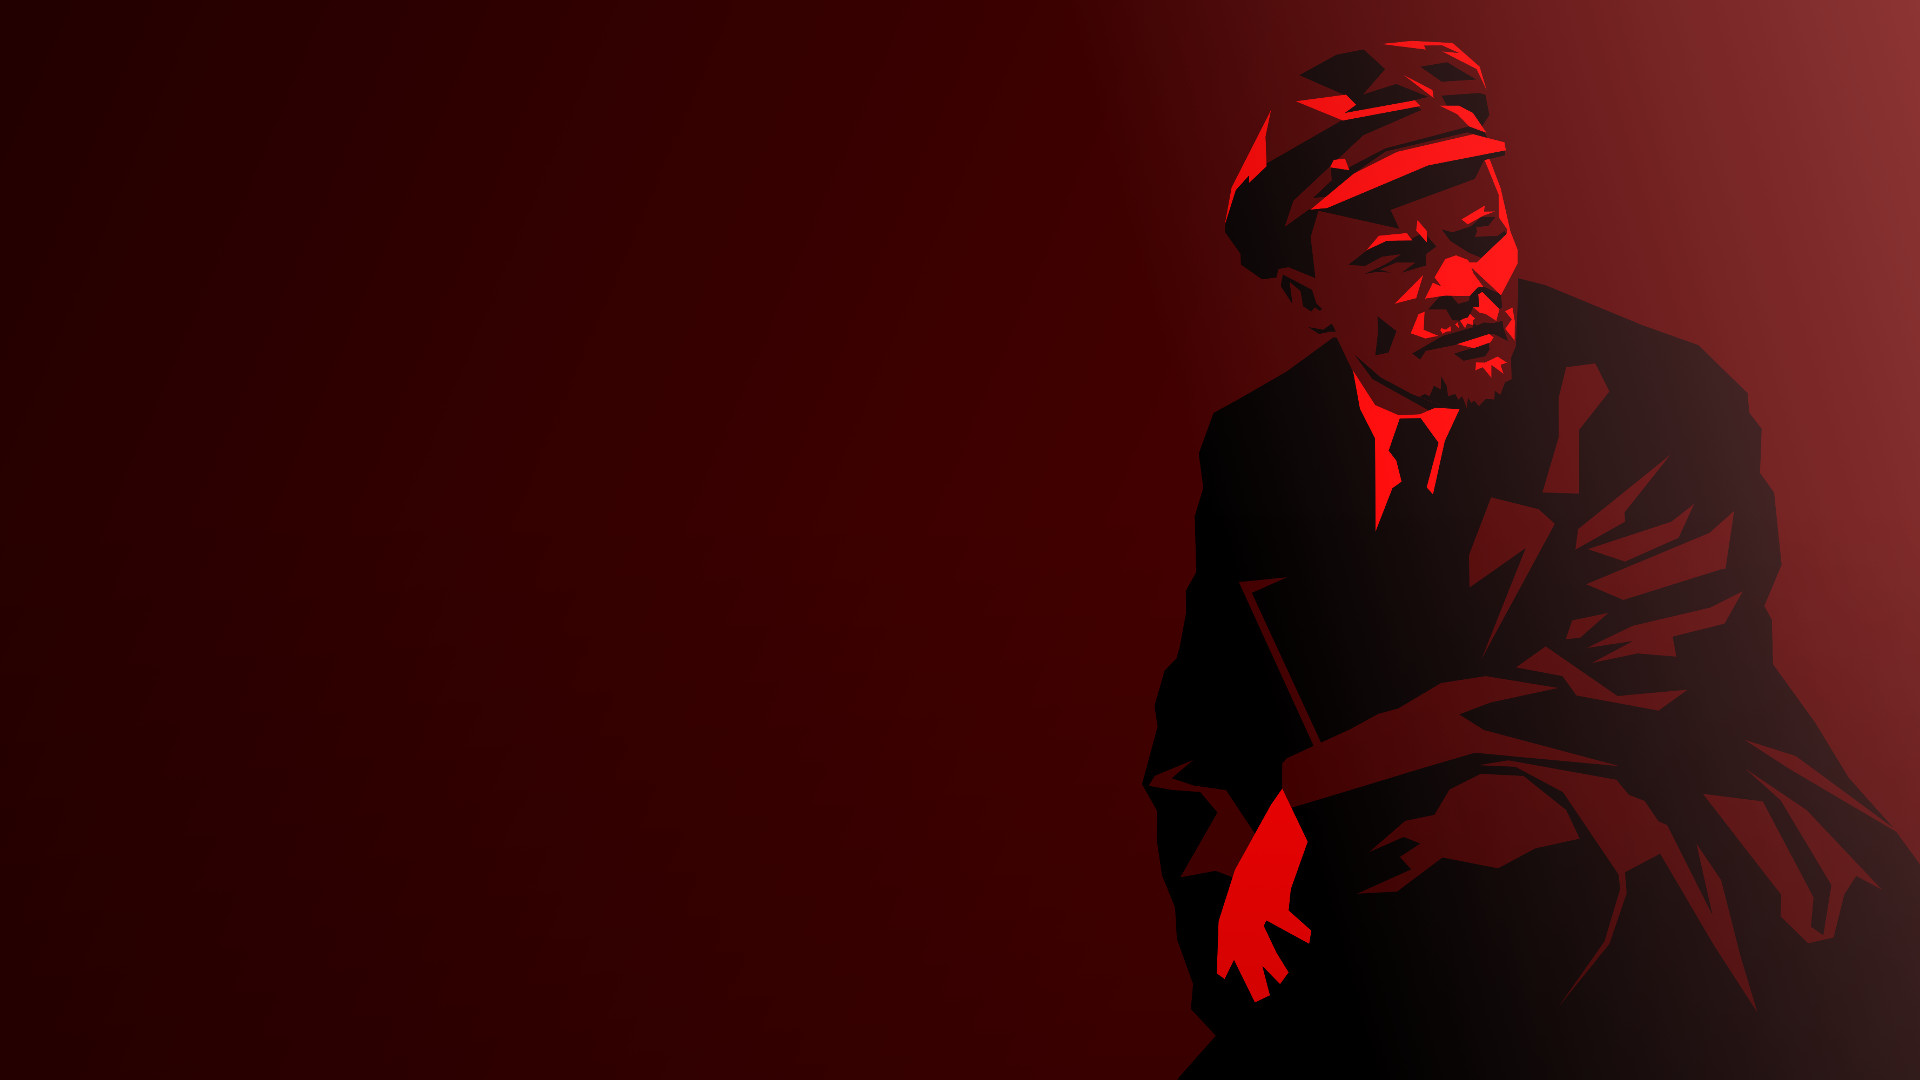 Lenin Wallpapers 56 images 1920x1080